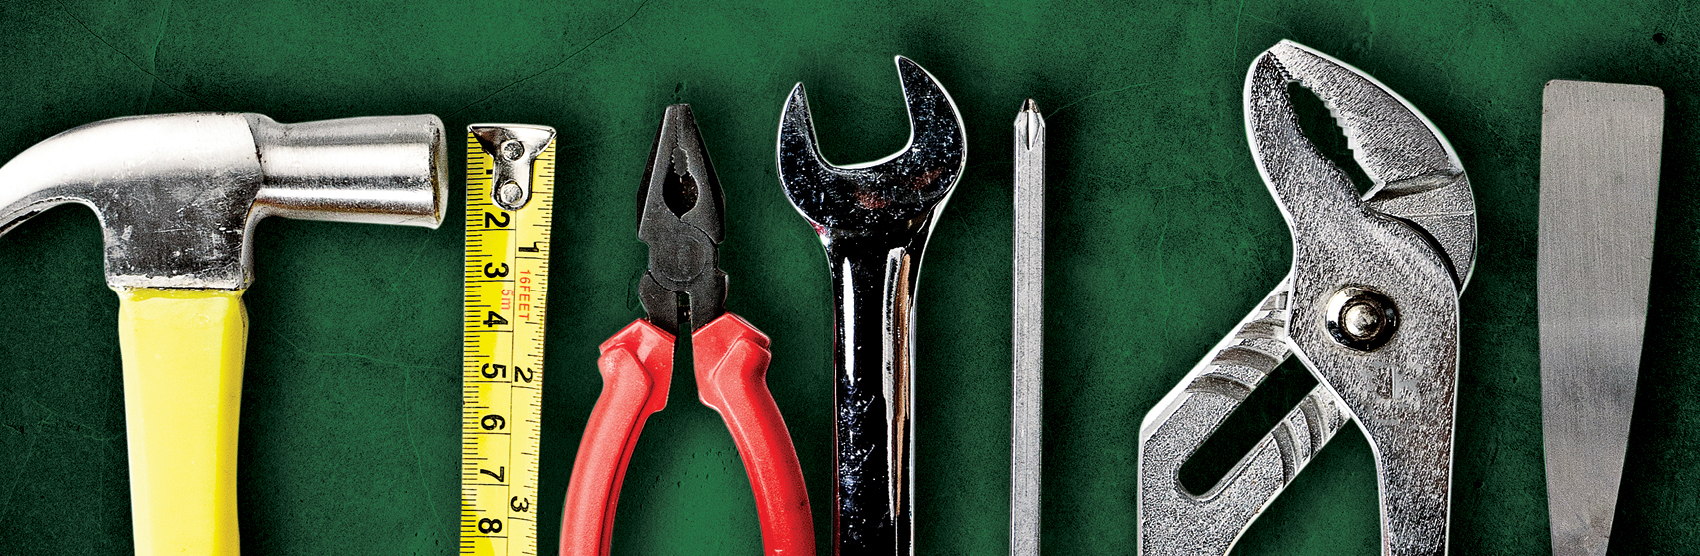 Tools on green background